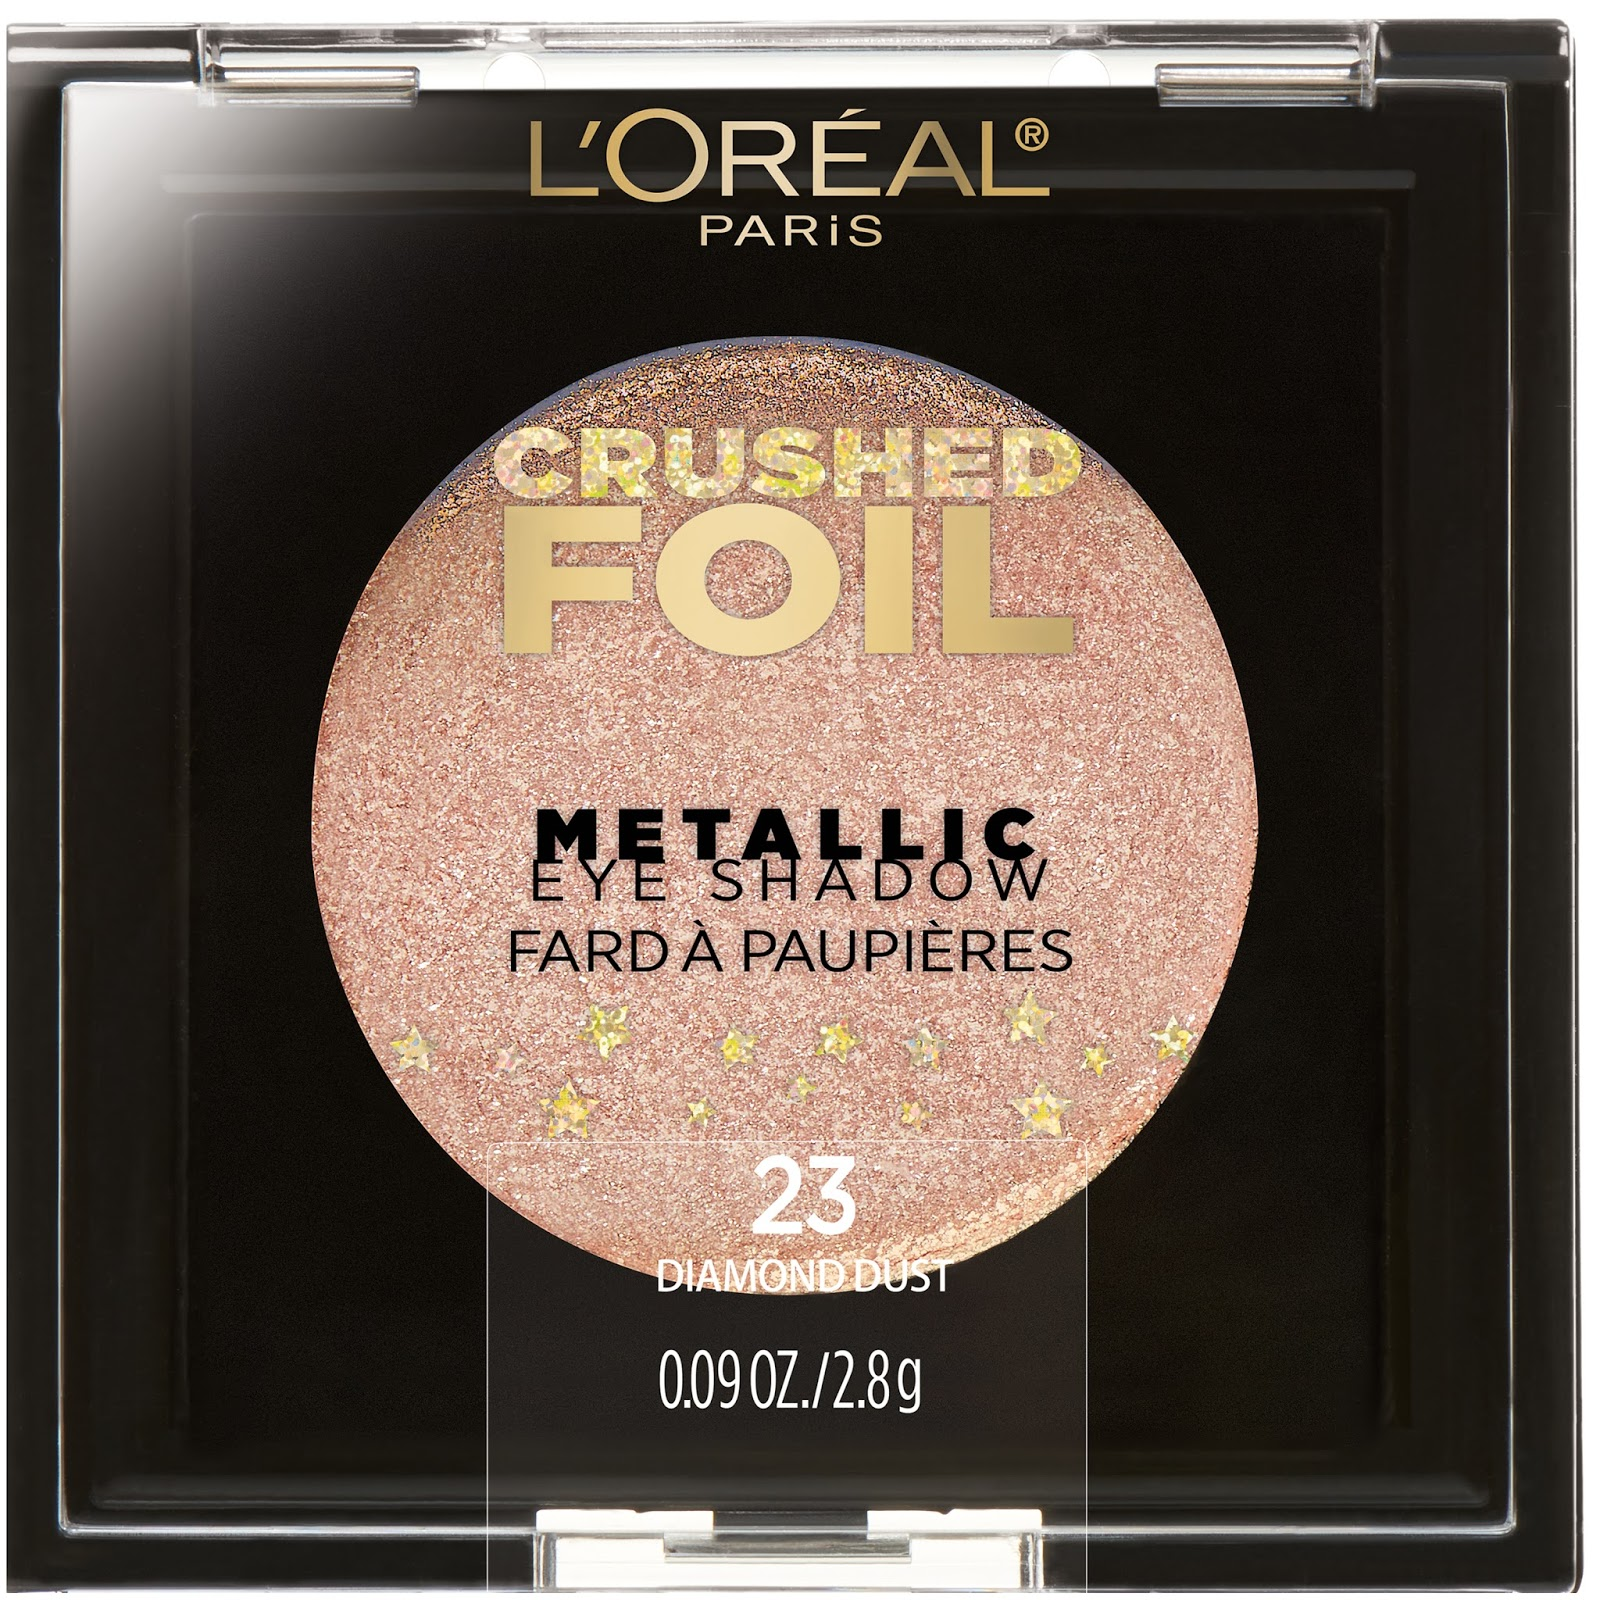 Loral Introduces The Crushed Foils Collection Available Inez Color Contour Plus Loose Eyeshadow Powder Sparkling Silver Diamond Dust